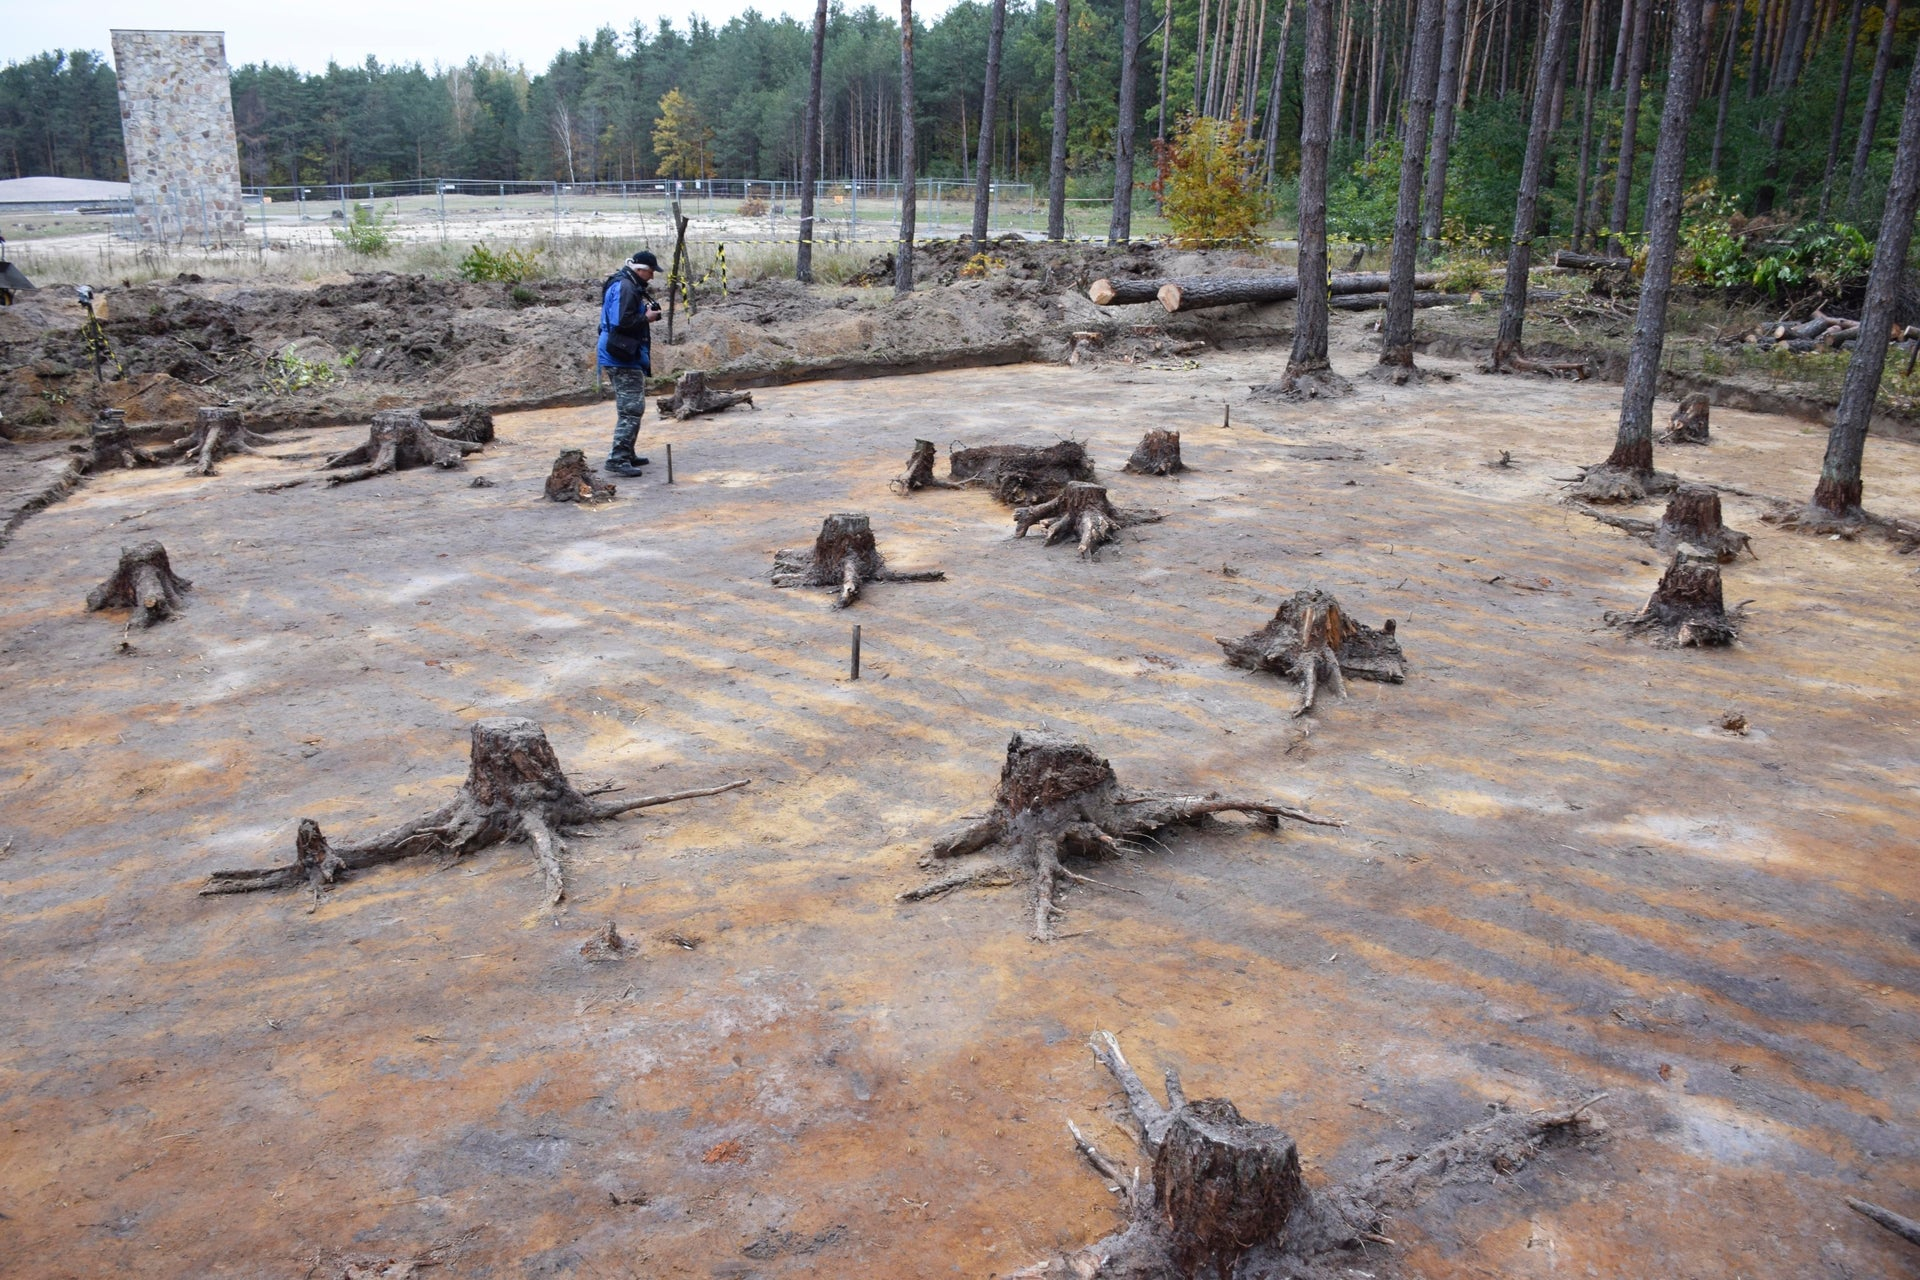 The dig site at the Sobibor death camp in Poland.